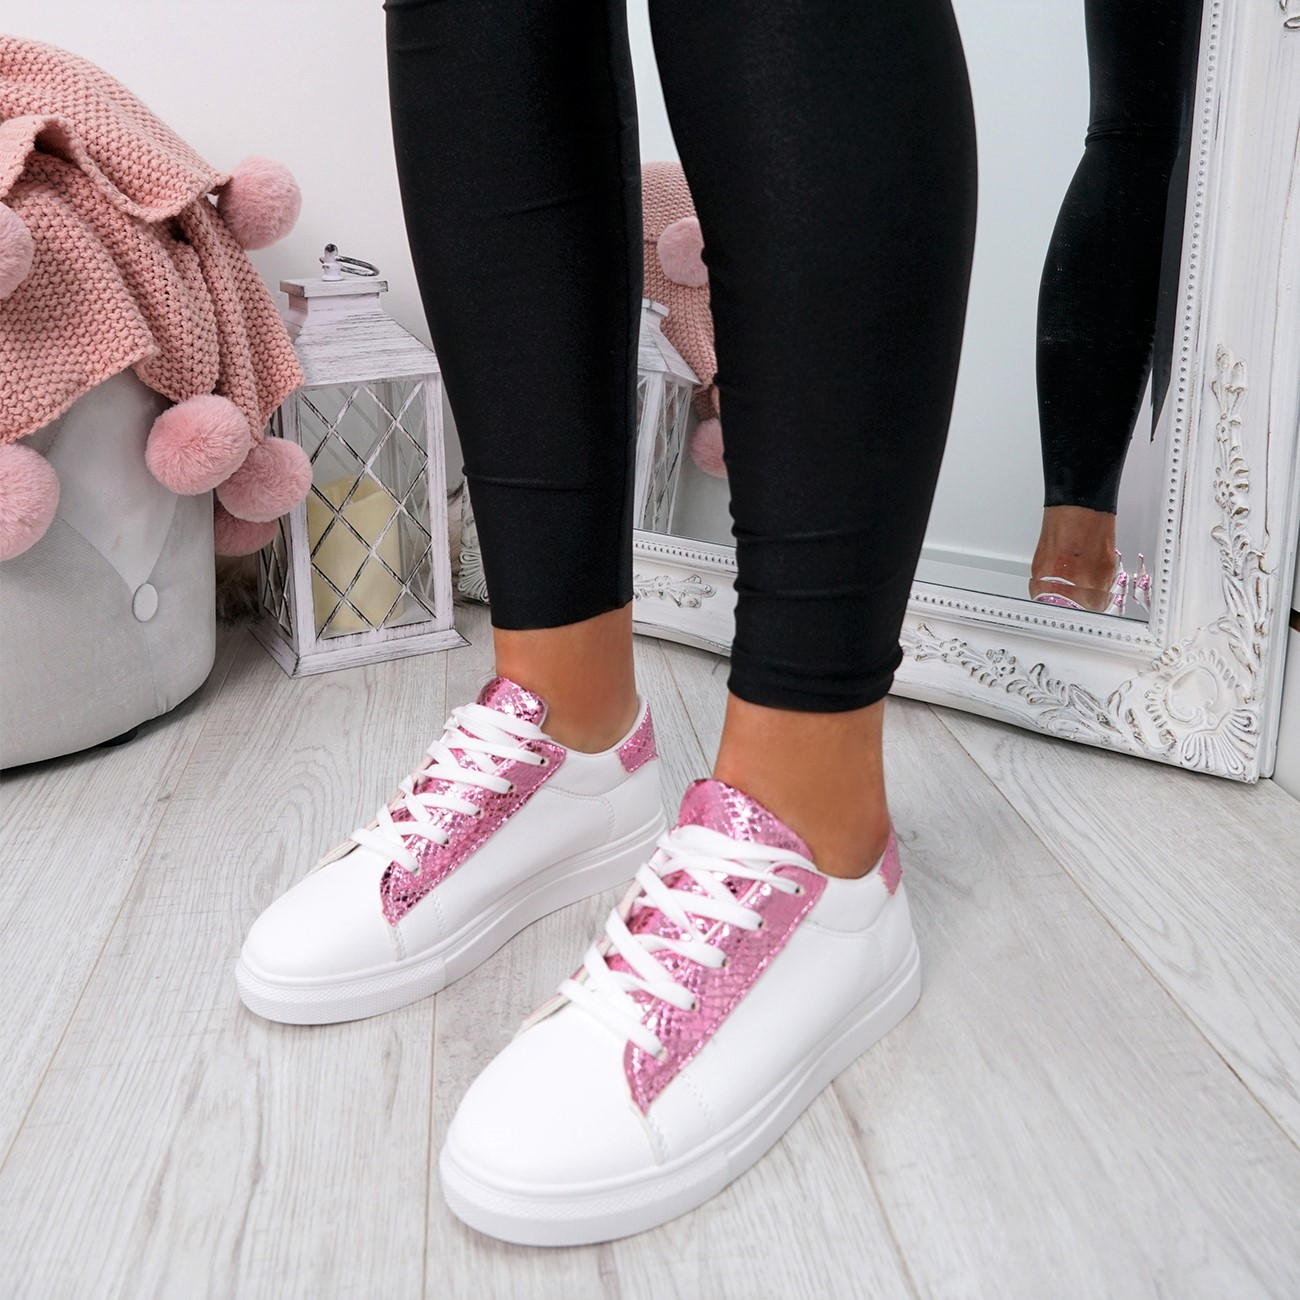 WOMENS-LADIES-SNAKE-SKIN-GLITTER-LACE-UP-TRAINERS-PLIMSOLLS-SNEAKERS-SHOES thumbnail 17